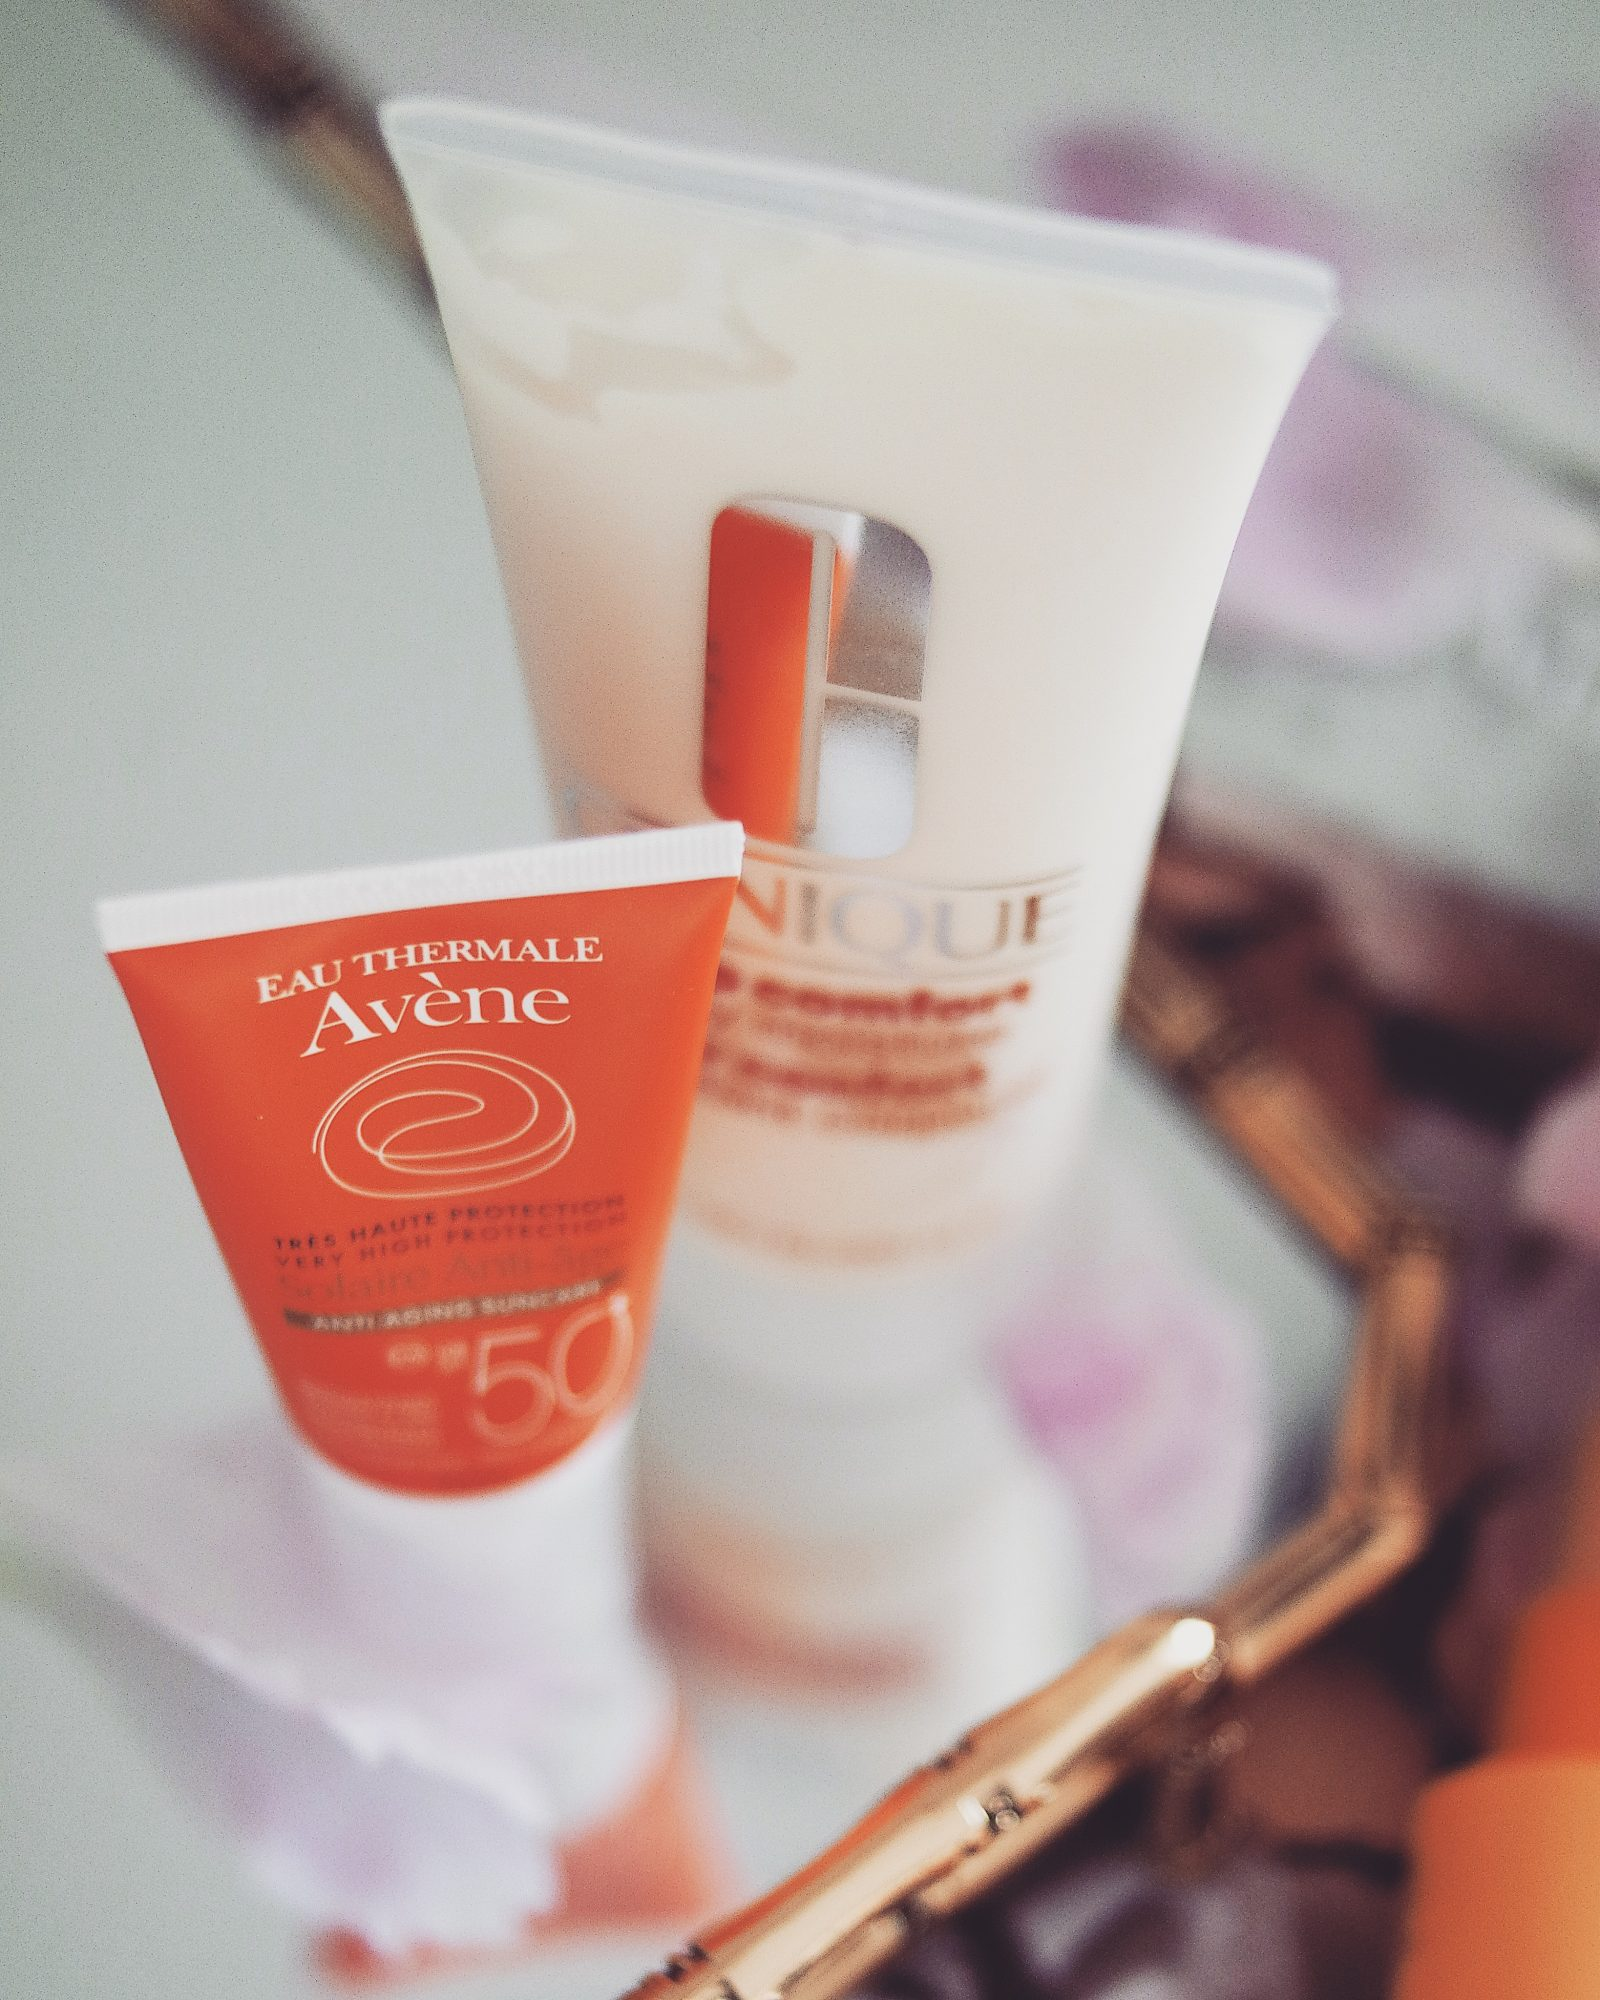 Travel Beauty Essentials - Face Beauty Products. Avene Anti Wrinkle Sun Cream